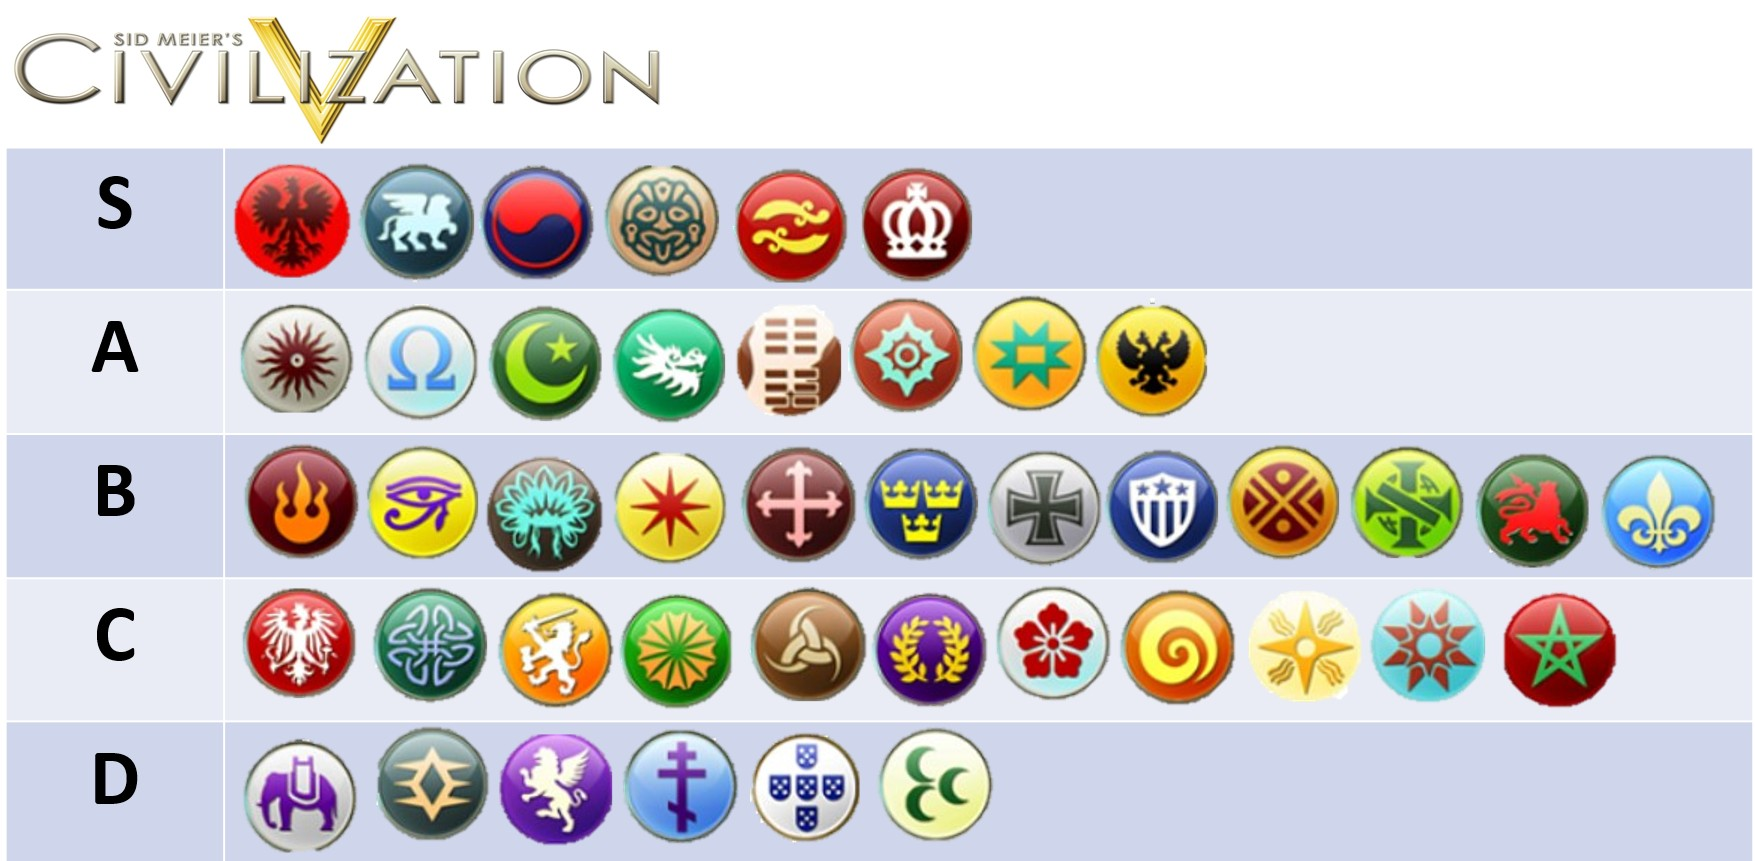 Civ 5 Tier List 2020.Civ 5 Tier List Strongest And Weakest Civilizations